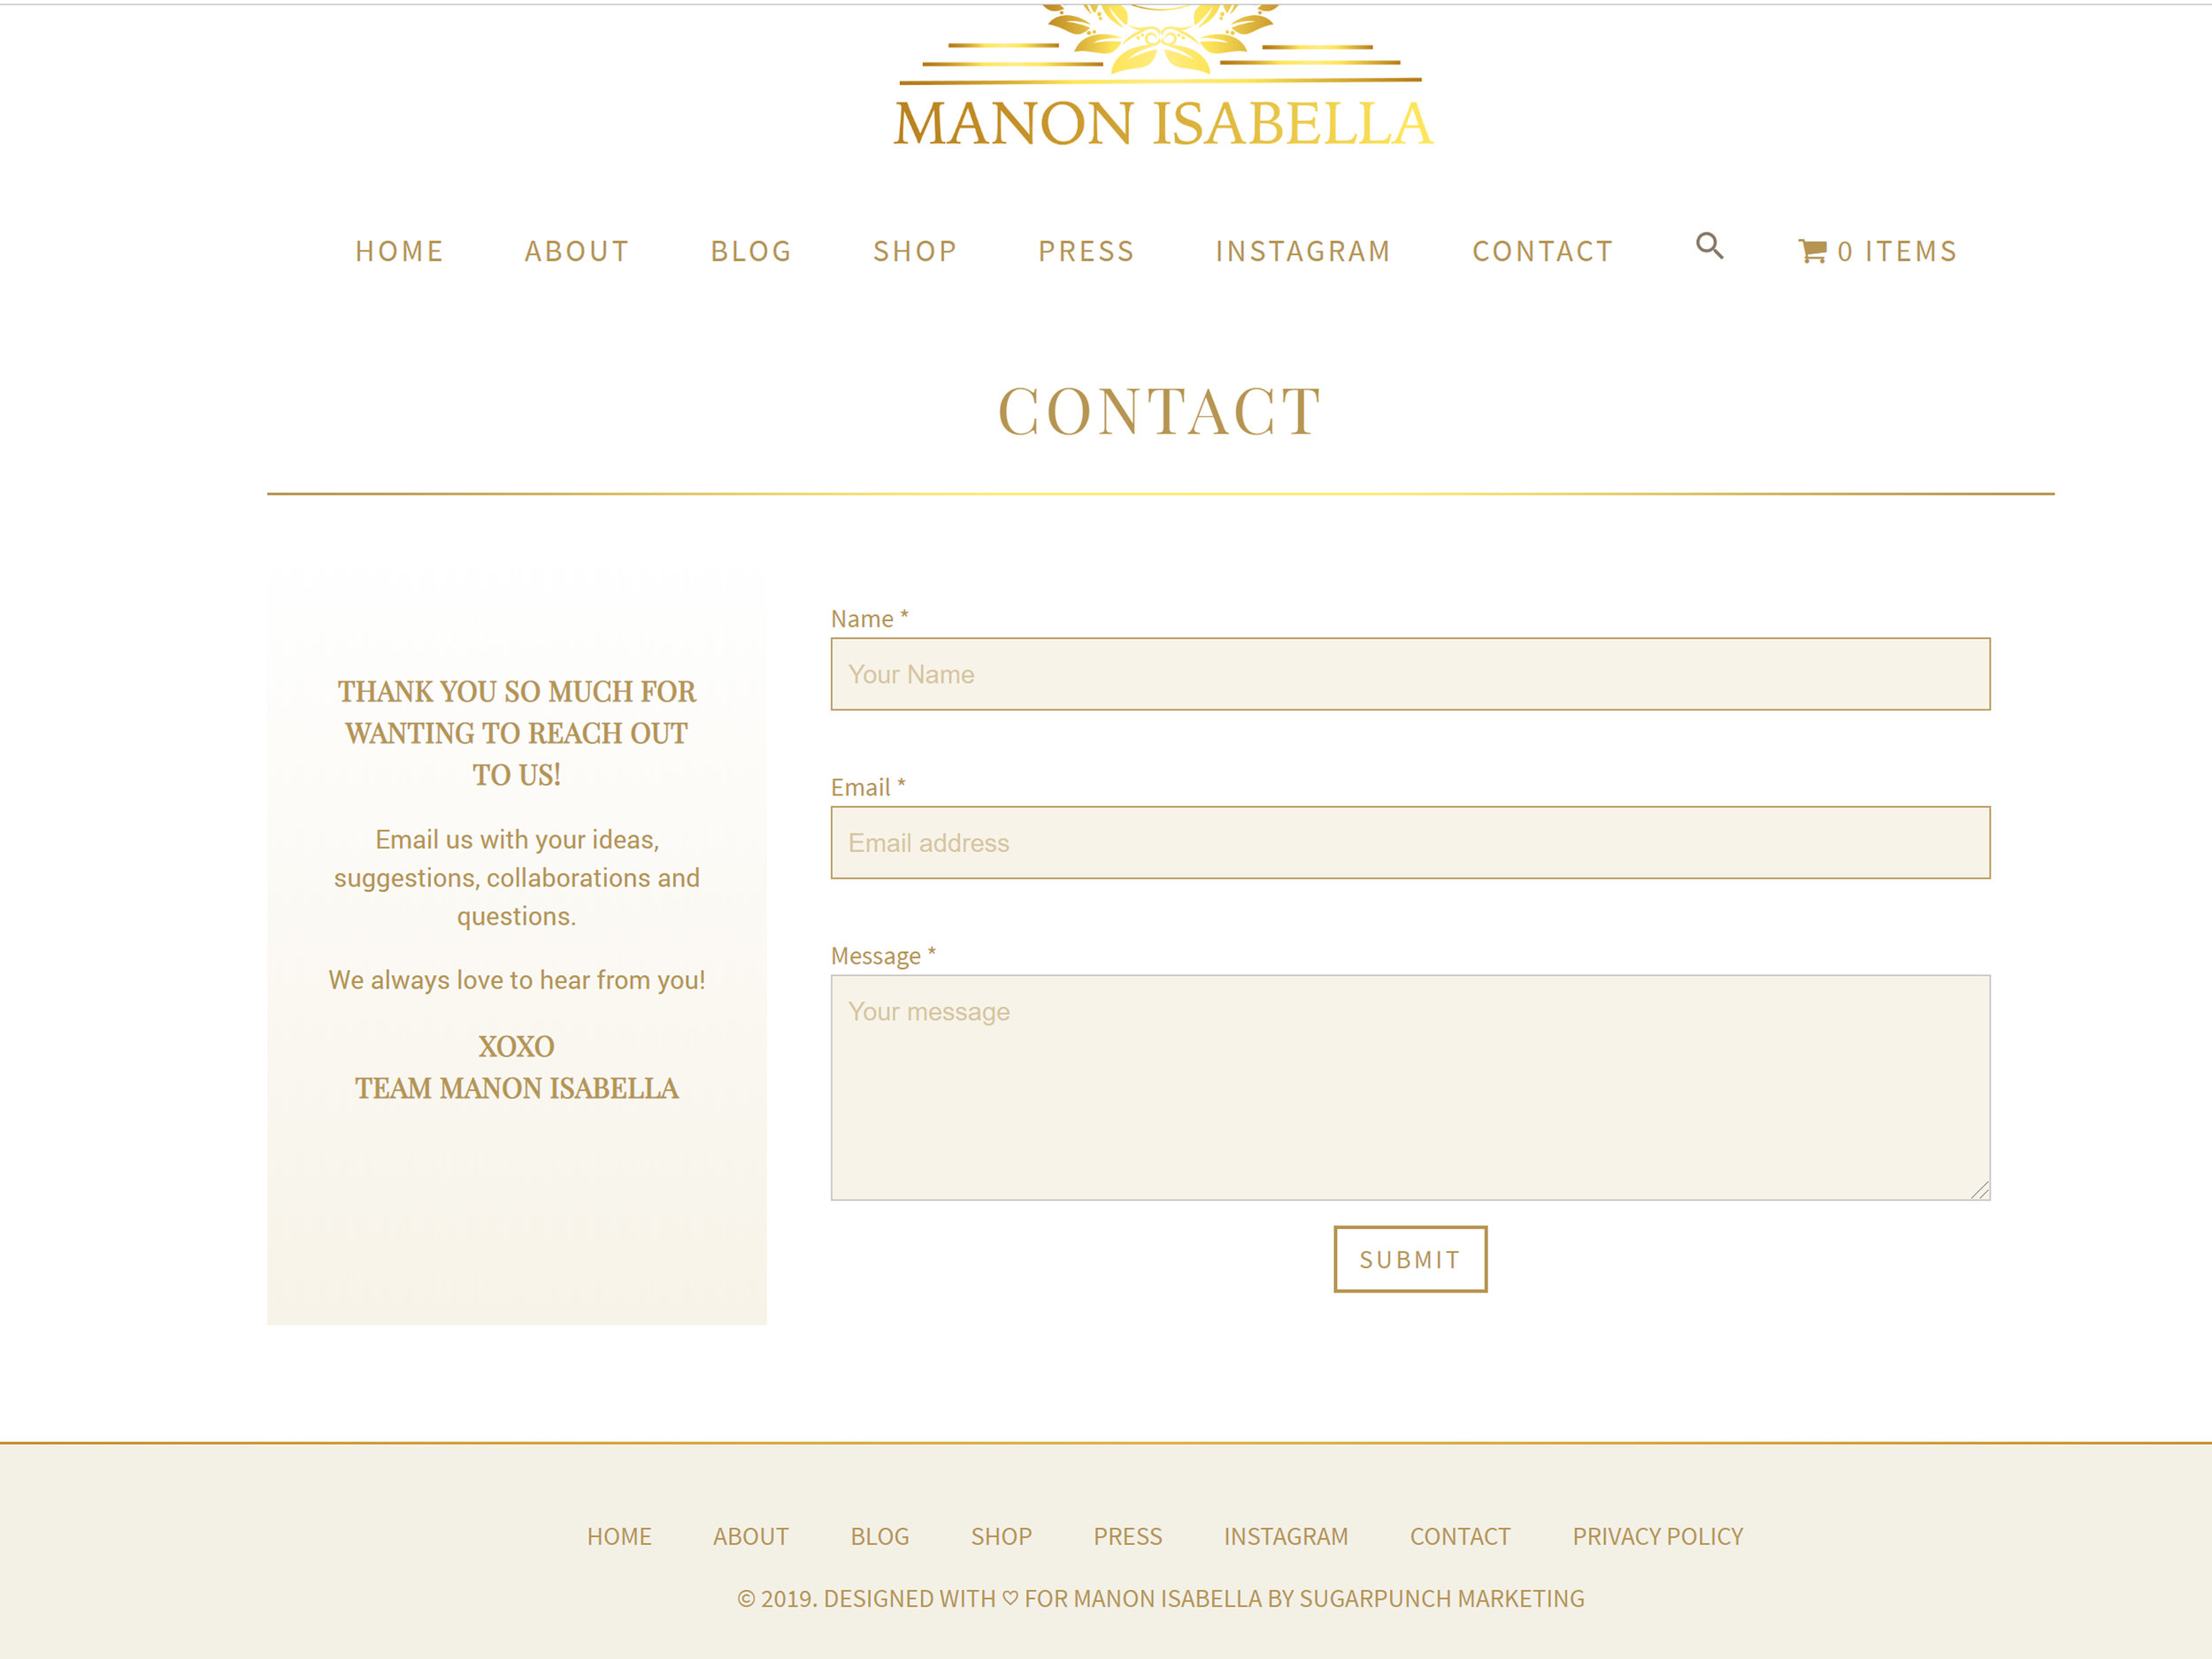 websitemockup-manonisabella4.jpg